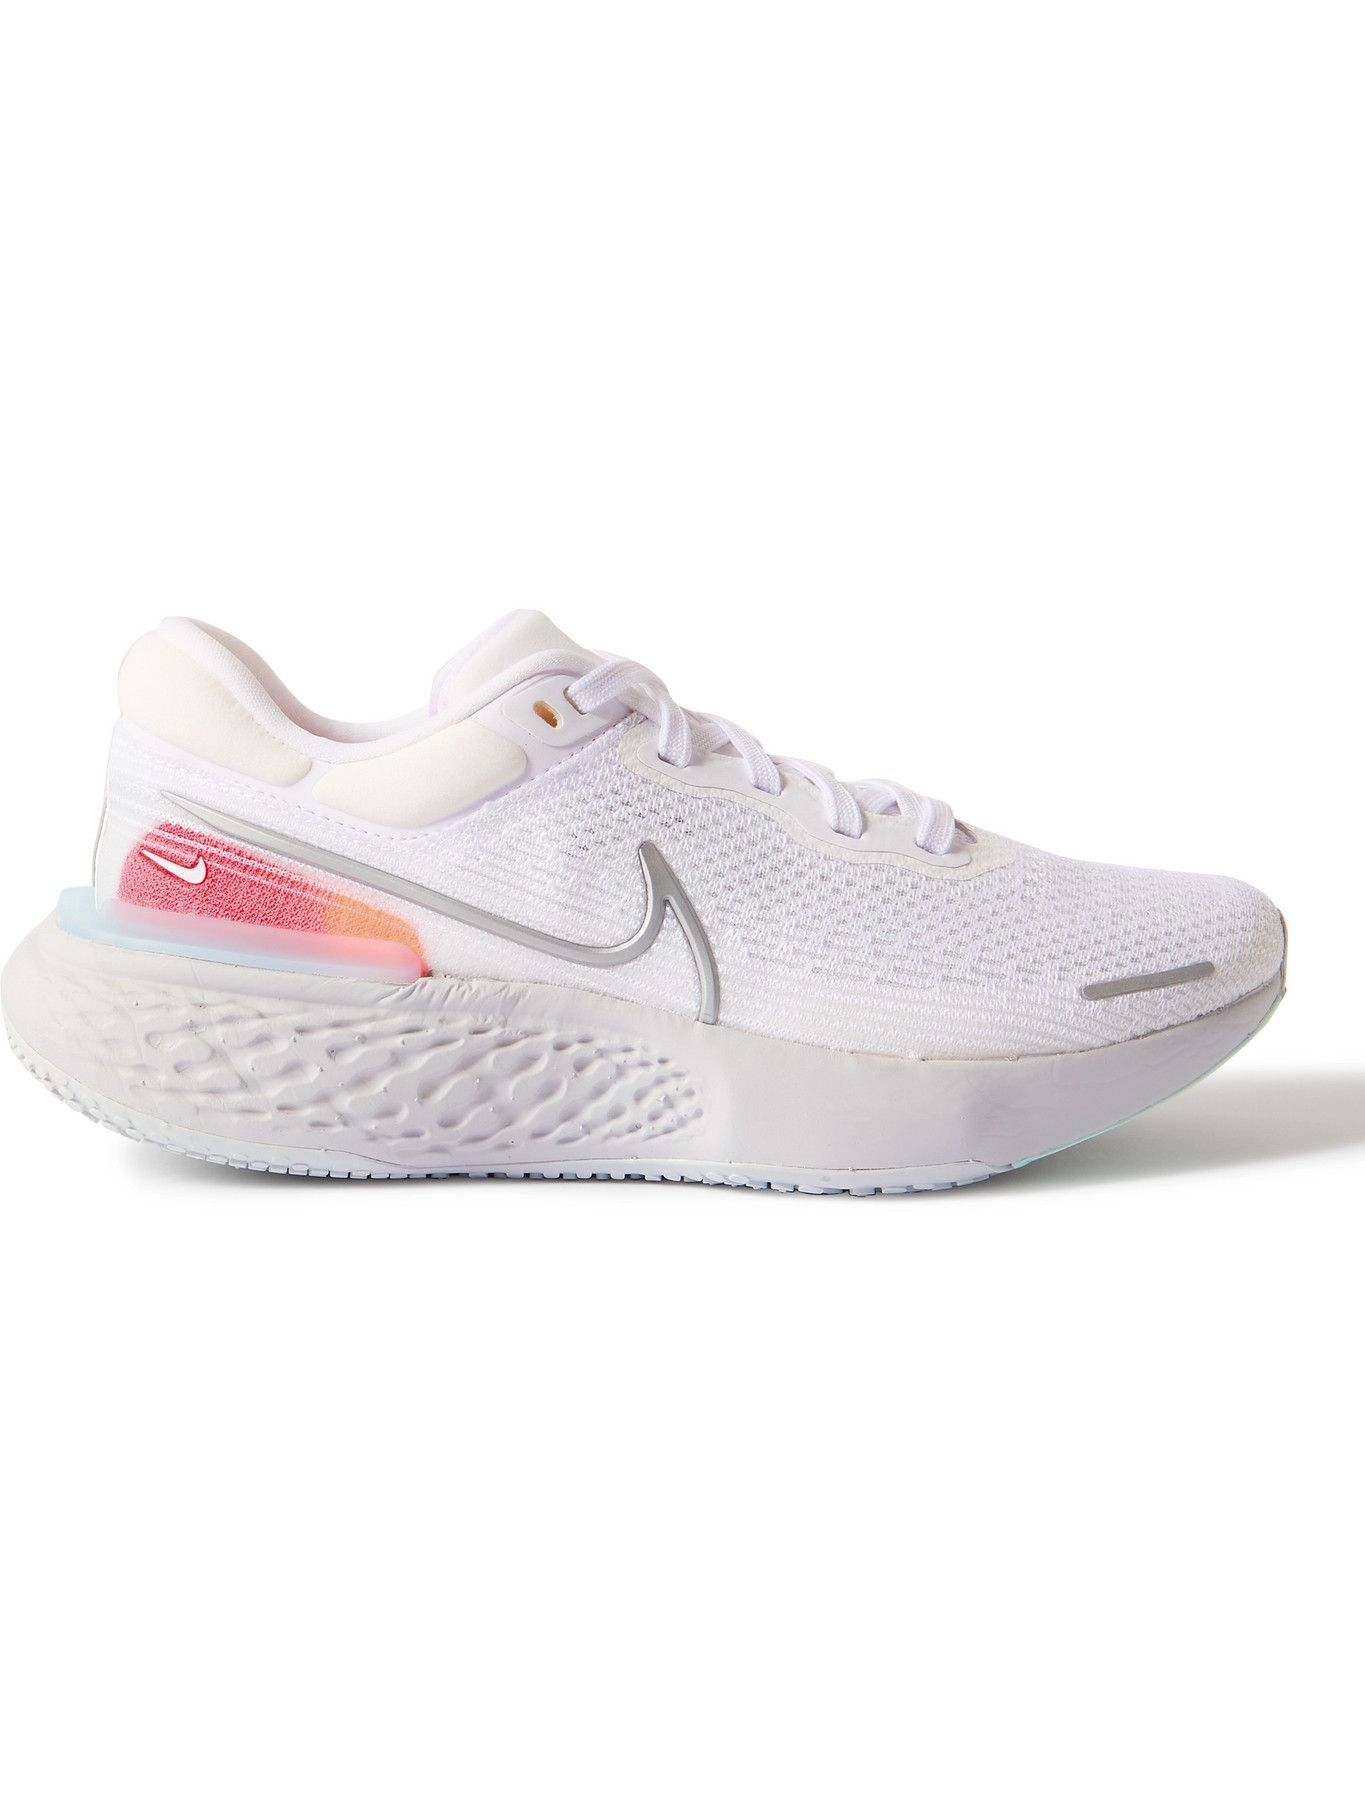 NIKE RUNNING - ZoomX Invincible Run Rubber-Trimmed Flyknit Running Sneakers - White